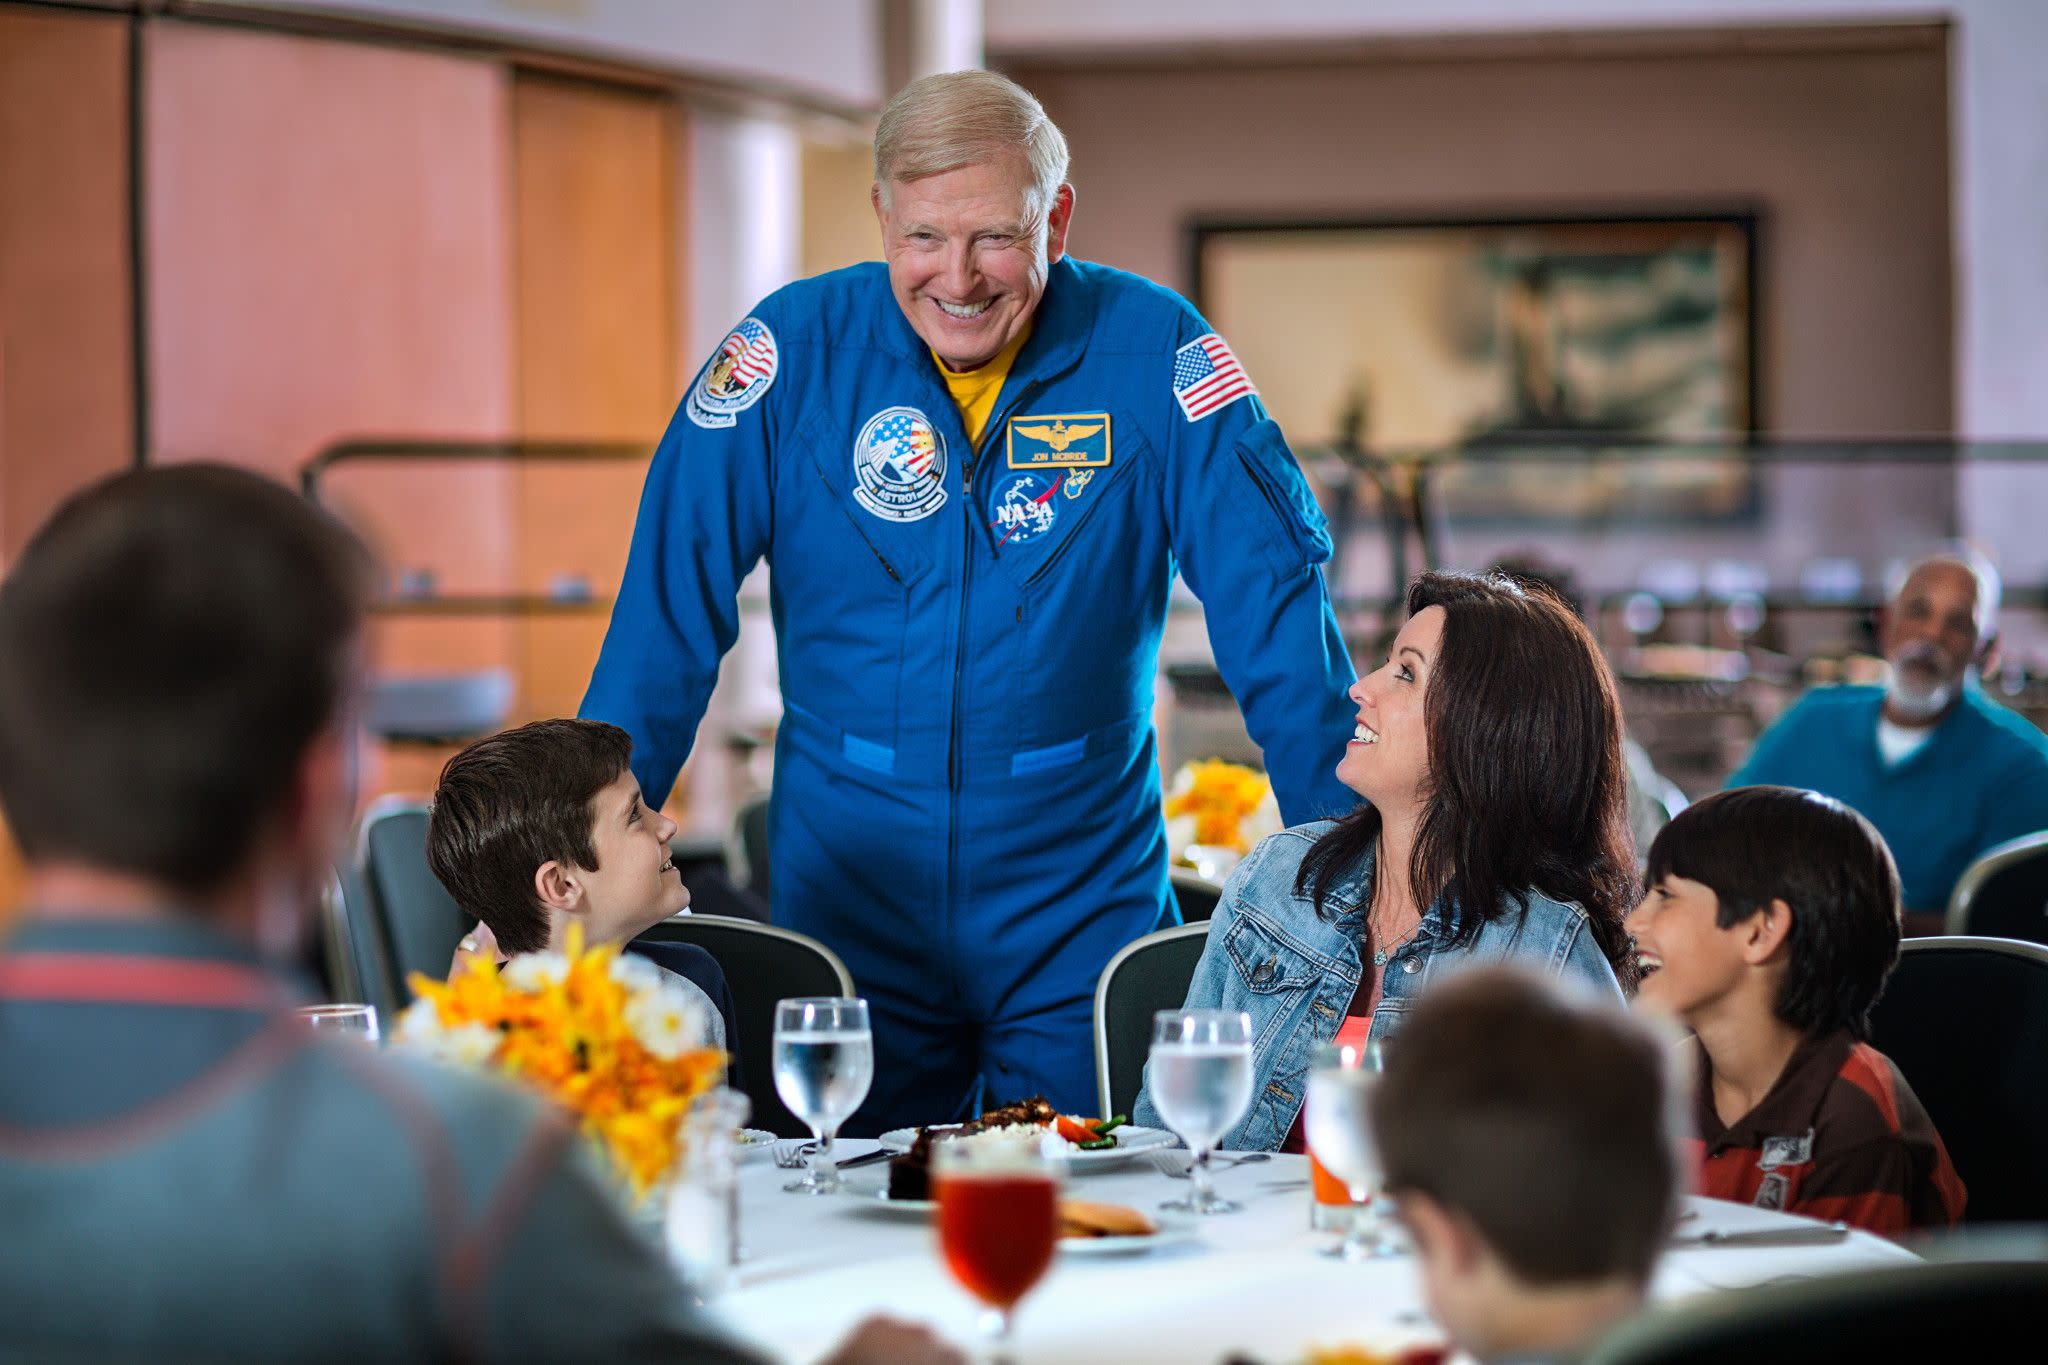 Dine With an Astronaut at Kennedy Space Center Visitor Complex Near Orlando